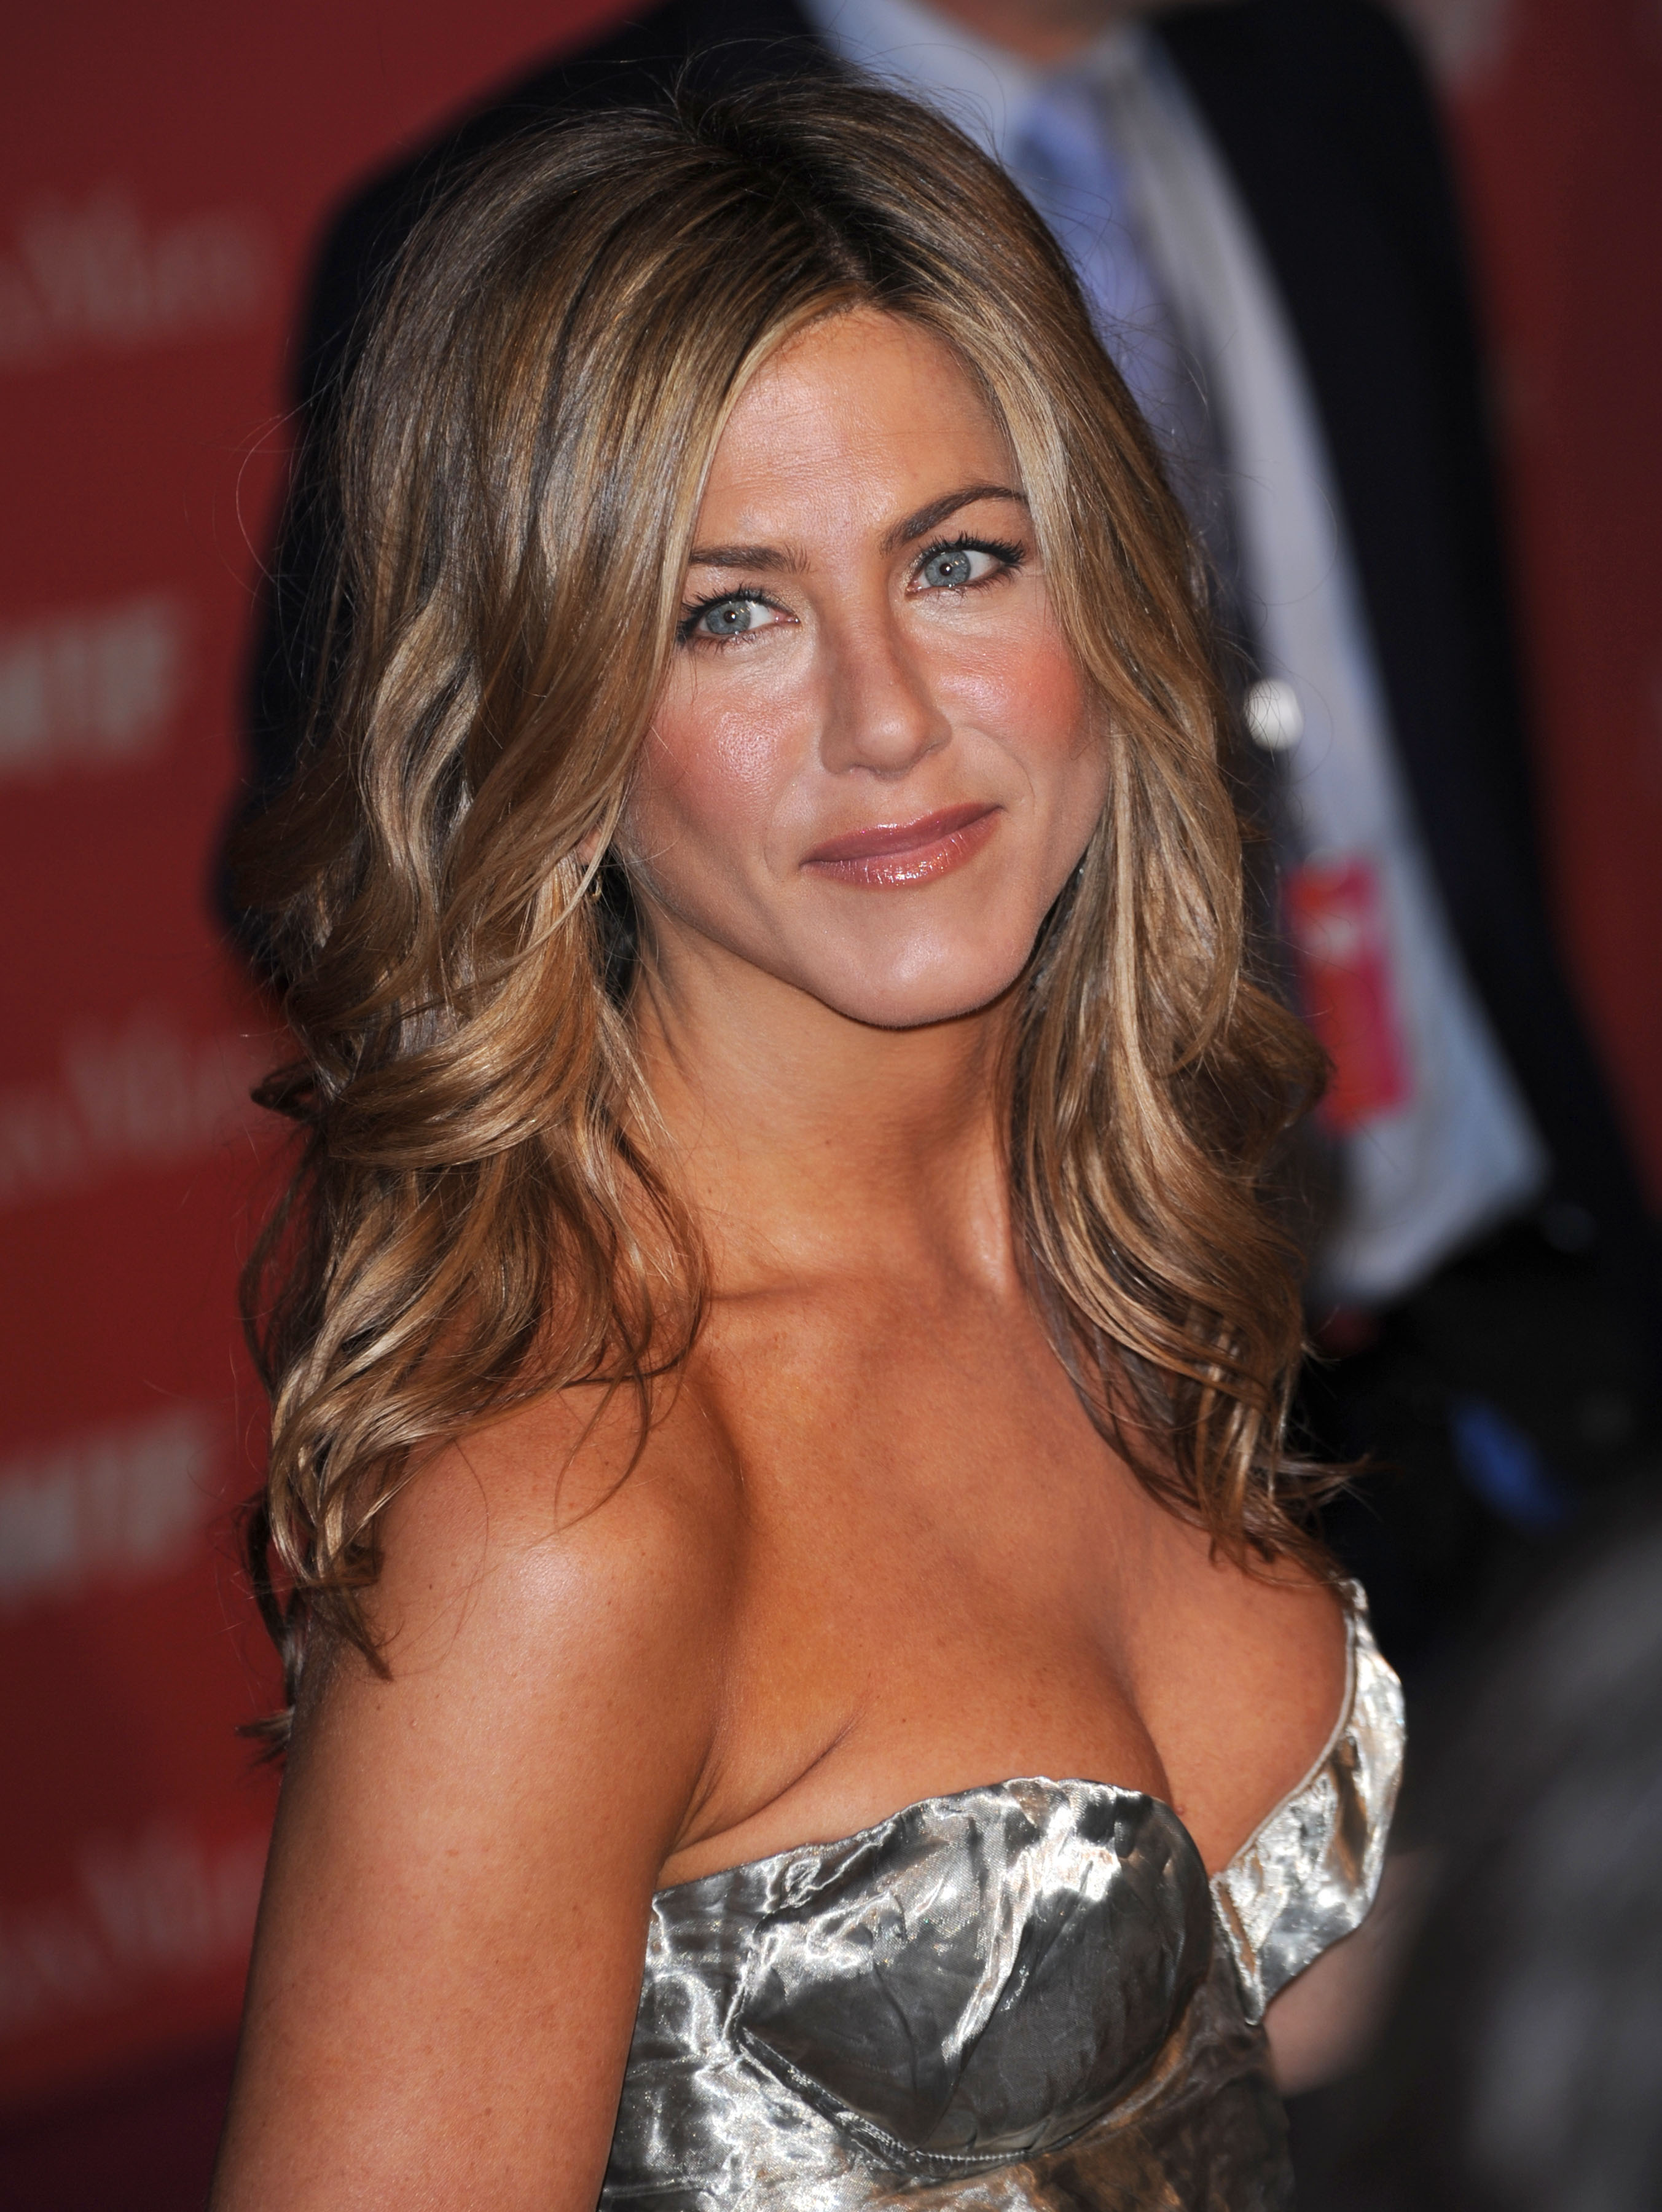 jennifer aniston pictures gallery 11 film actresses. Black Bedroom Furniture Sets. Home Design Ideas